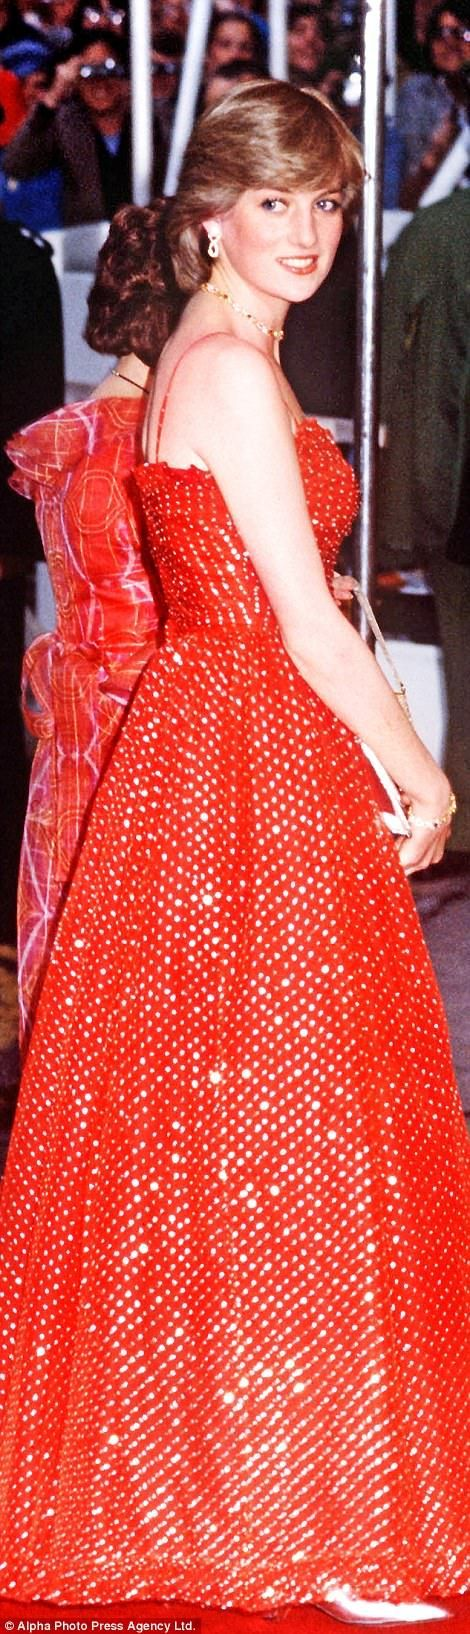 Lady in red: For a night at Covent Garden in 1982, Diana wears a dress in glitter chiffon by Bellville Sassoon